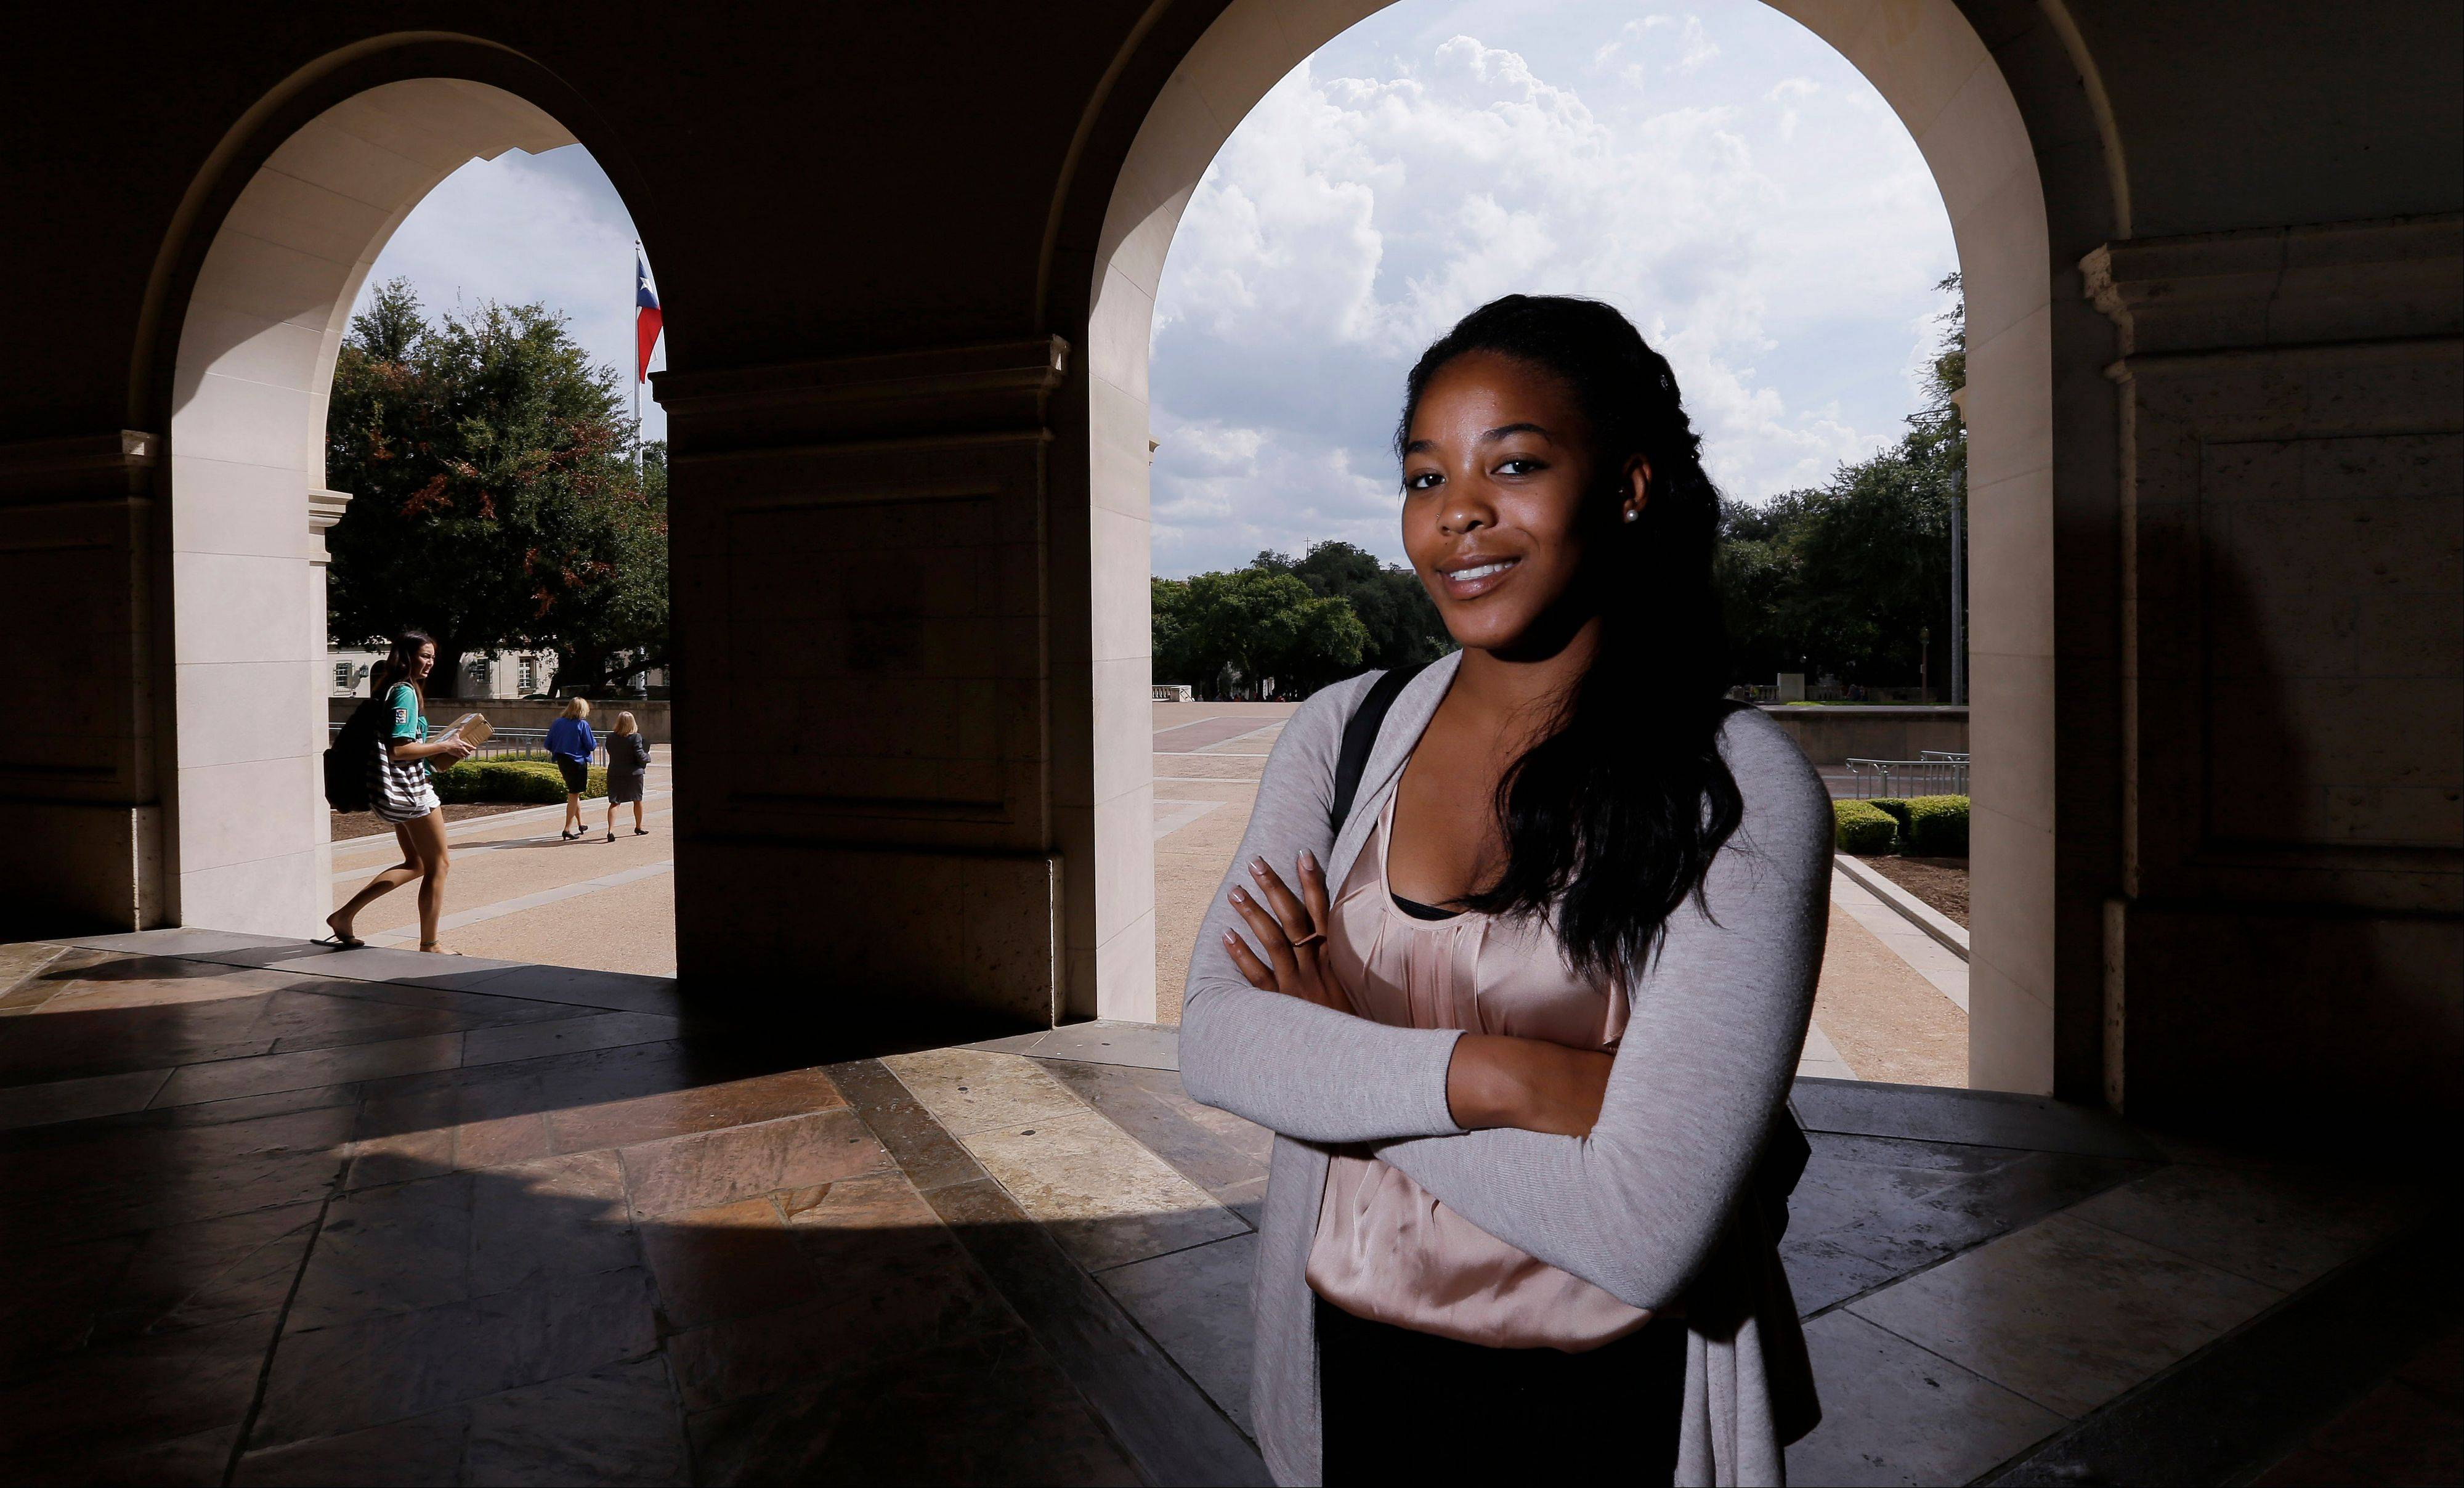 University of Texas at Austin senior Kristin Thompson on the campus in Austin, Texas. Although the University of Texas is one of the most diverse in the country, Thompson says she�s one of just two black female civil engineers in her class, despite aggressive recruiting. She�s found her community outside class, but her academic experience has been lonely. �At UT we talk about what starts here changes the world, but I think we�re doing a disservice to students by not preparing them for a world that doesn�t have these demographics,� she said.